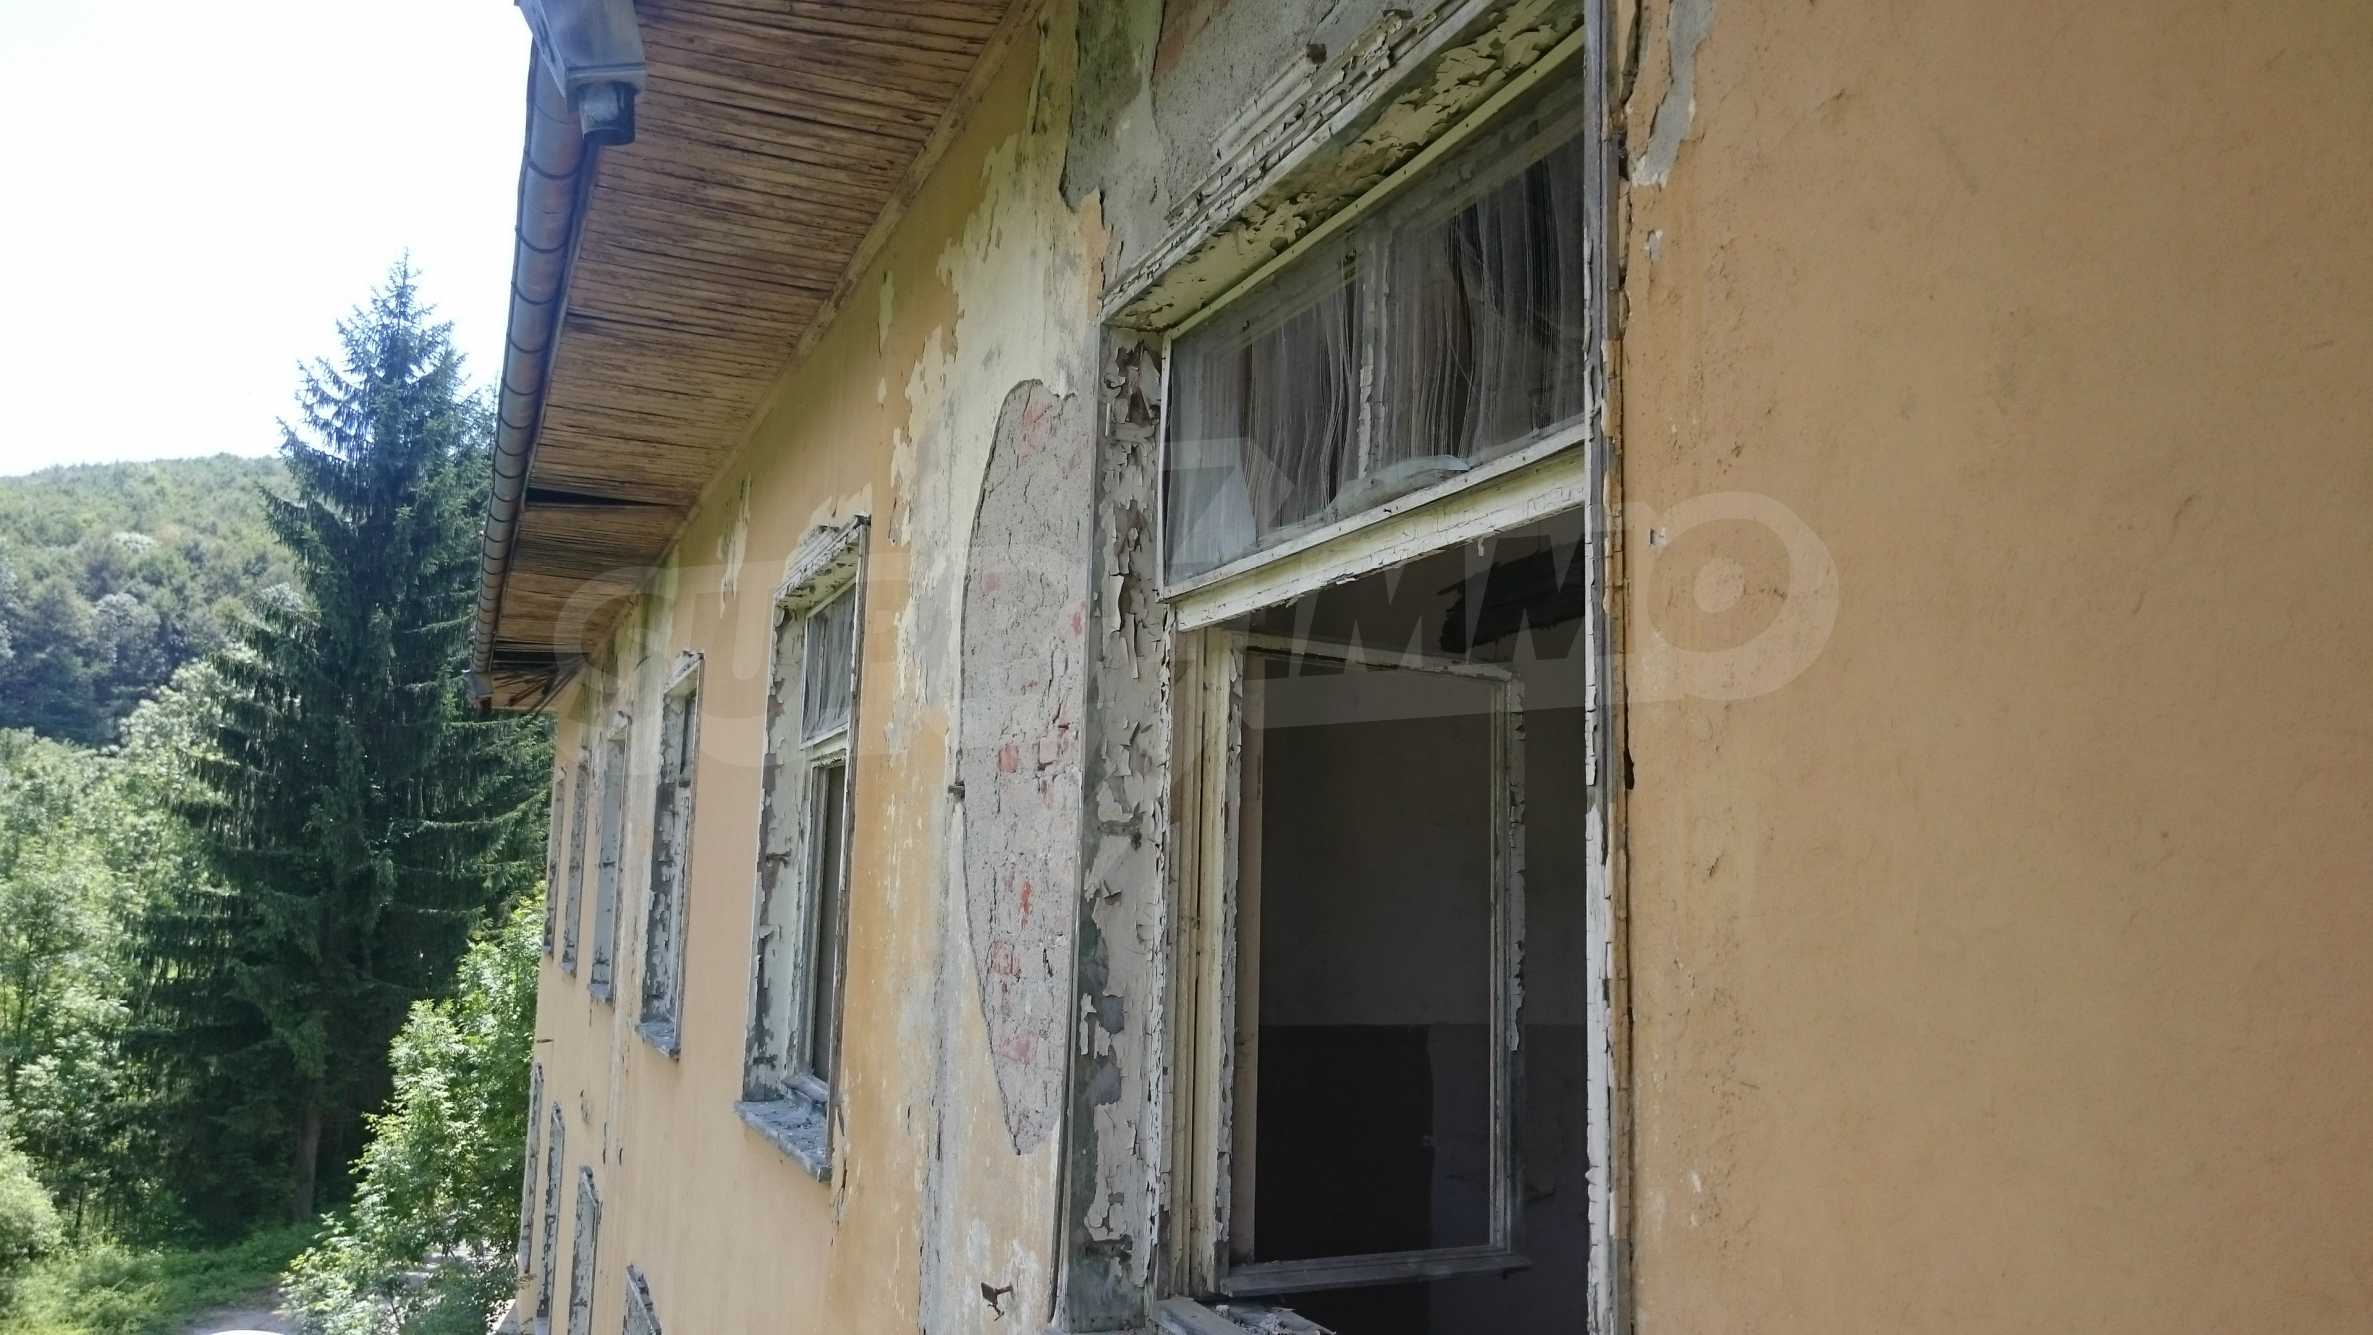 Hotel in need of complete renovation 40